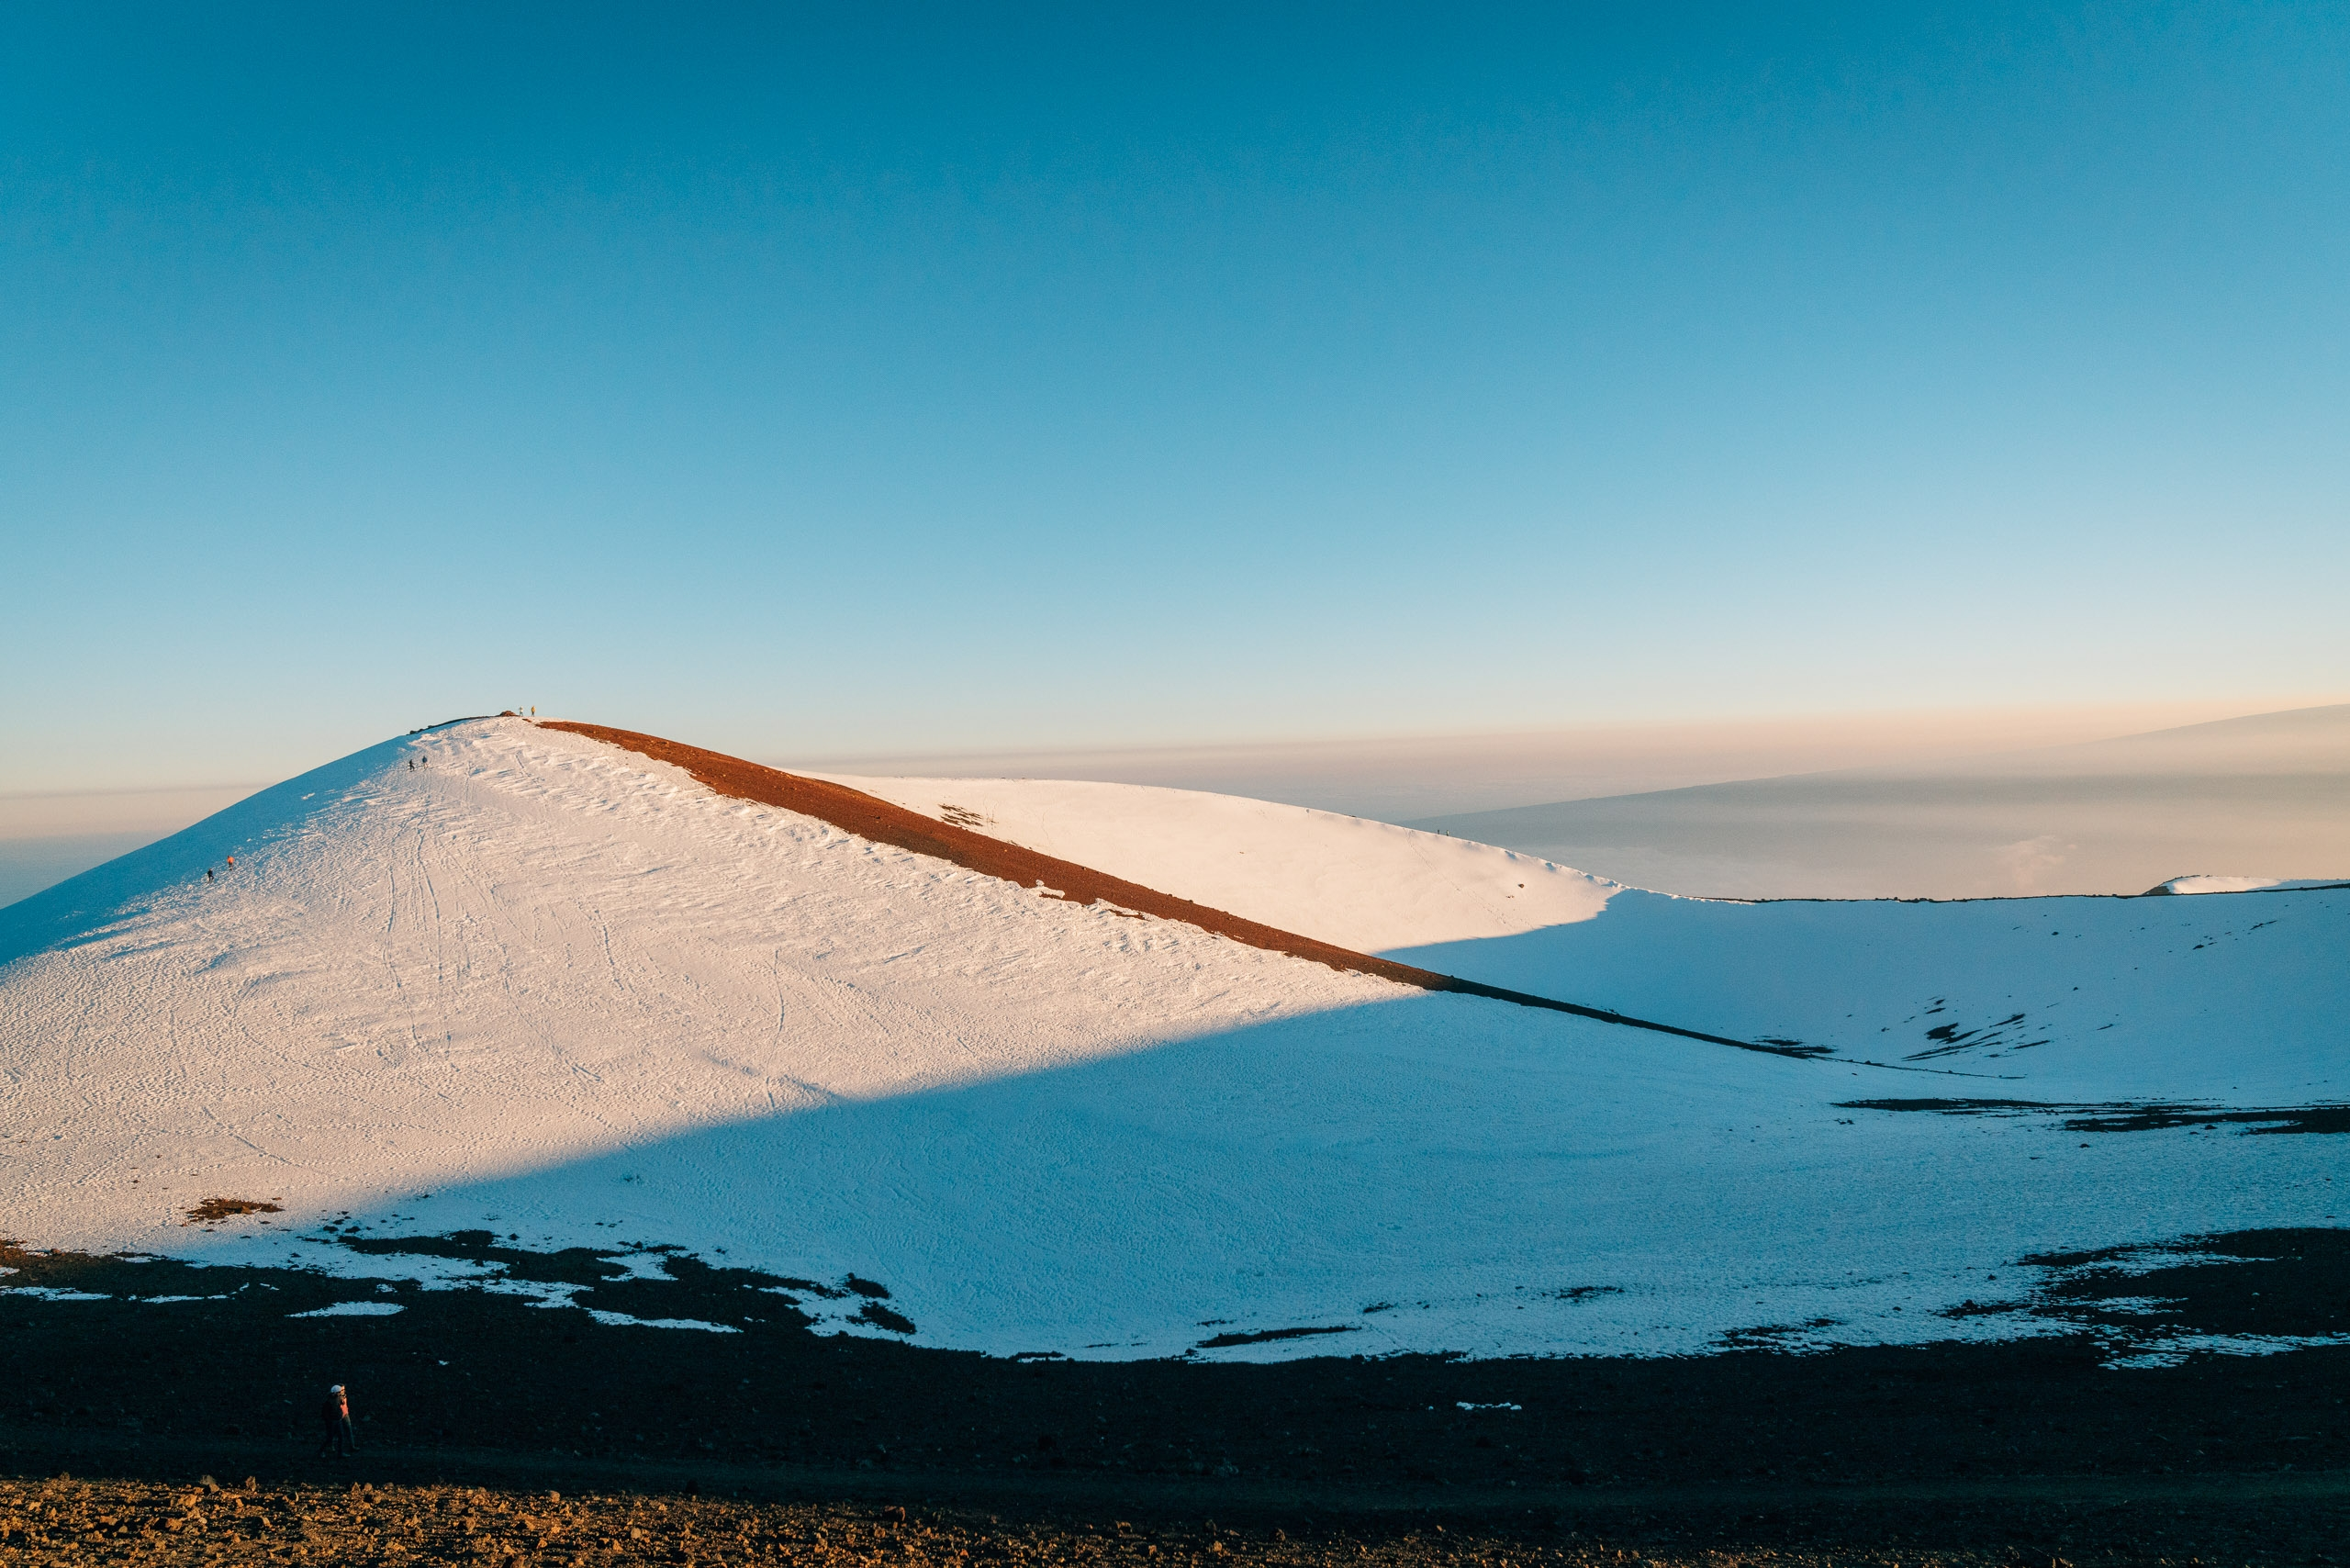 The Setting Sun atop Mauna Kea